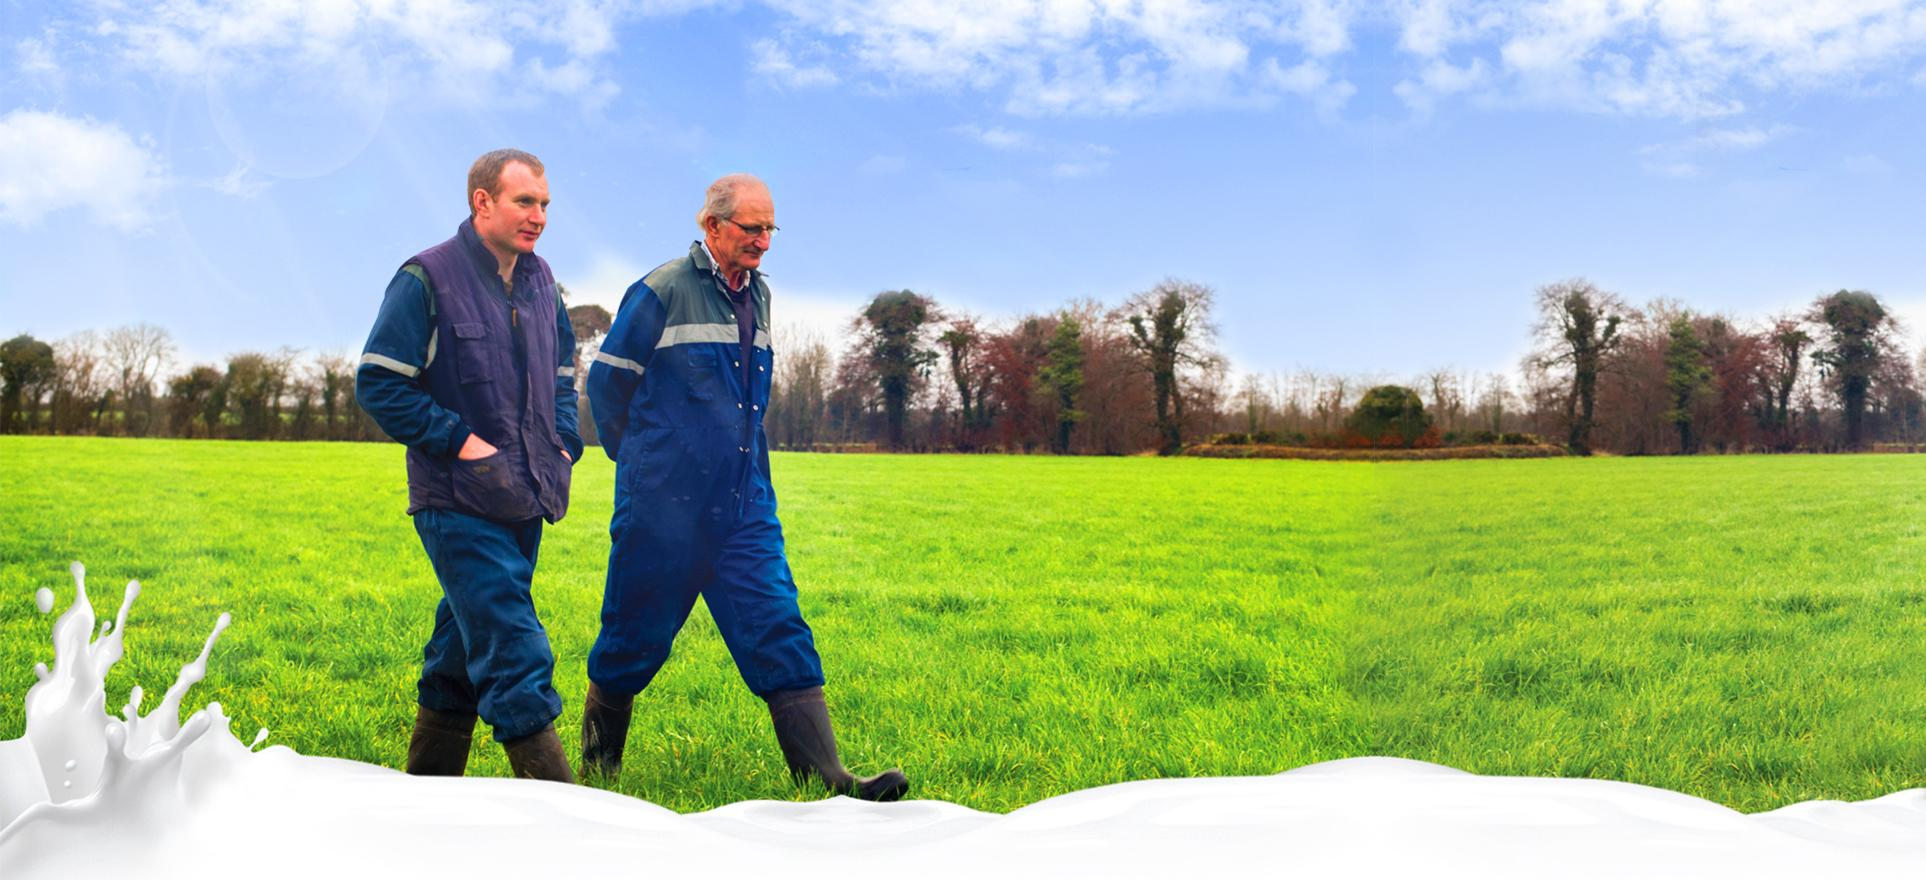 Two farmers walking through a green field